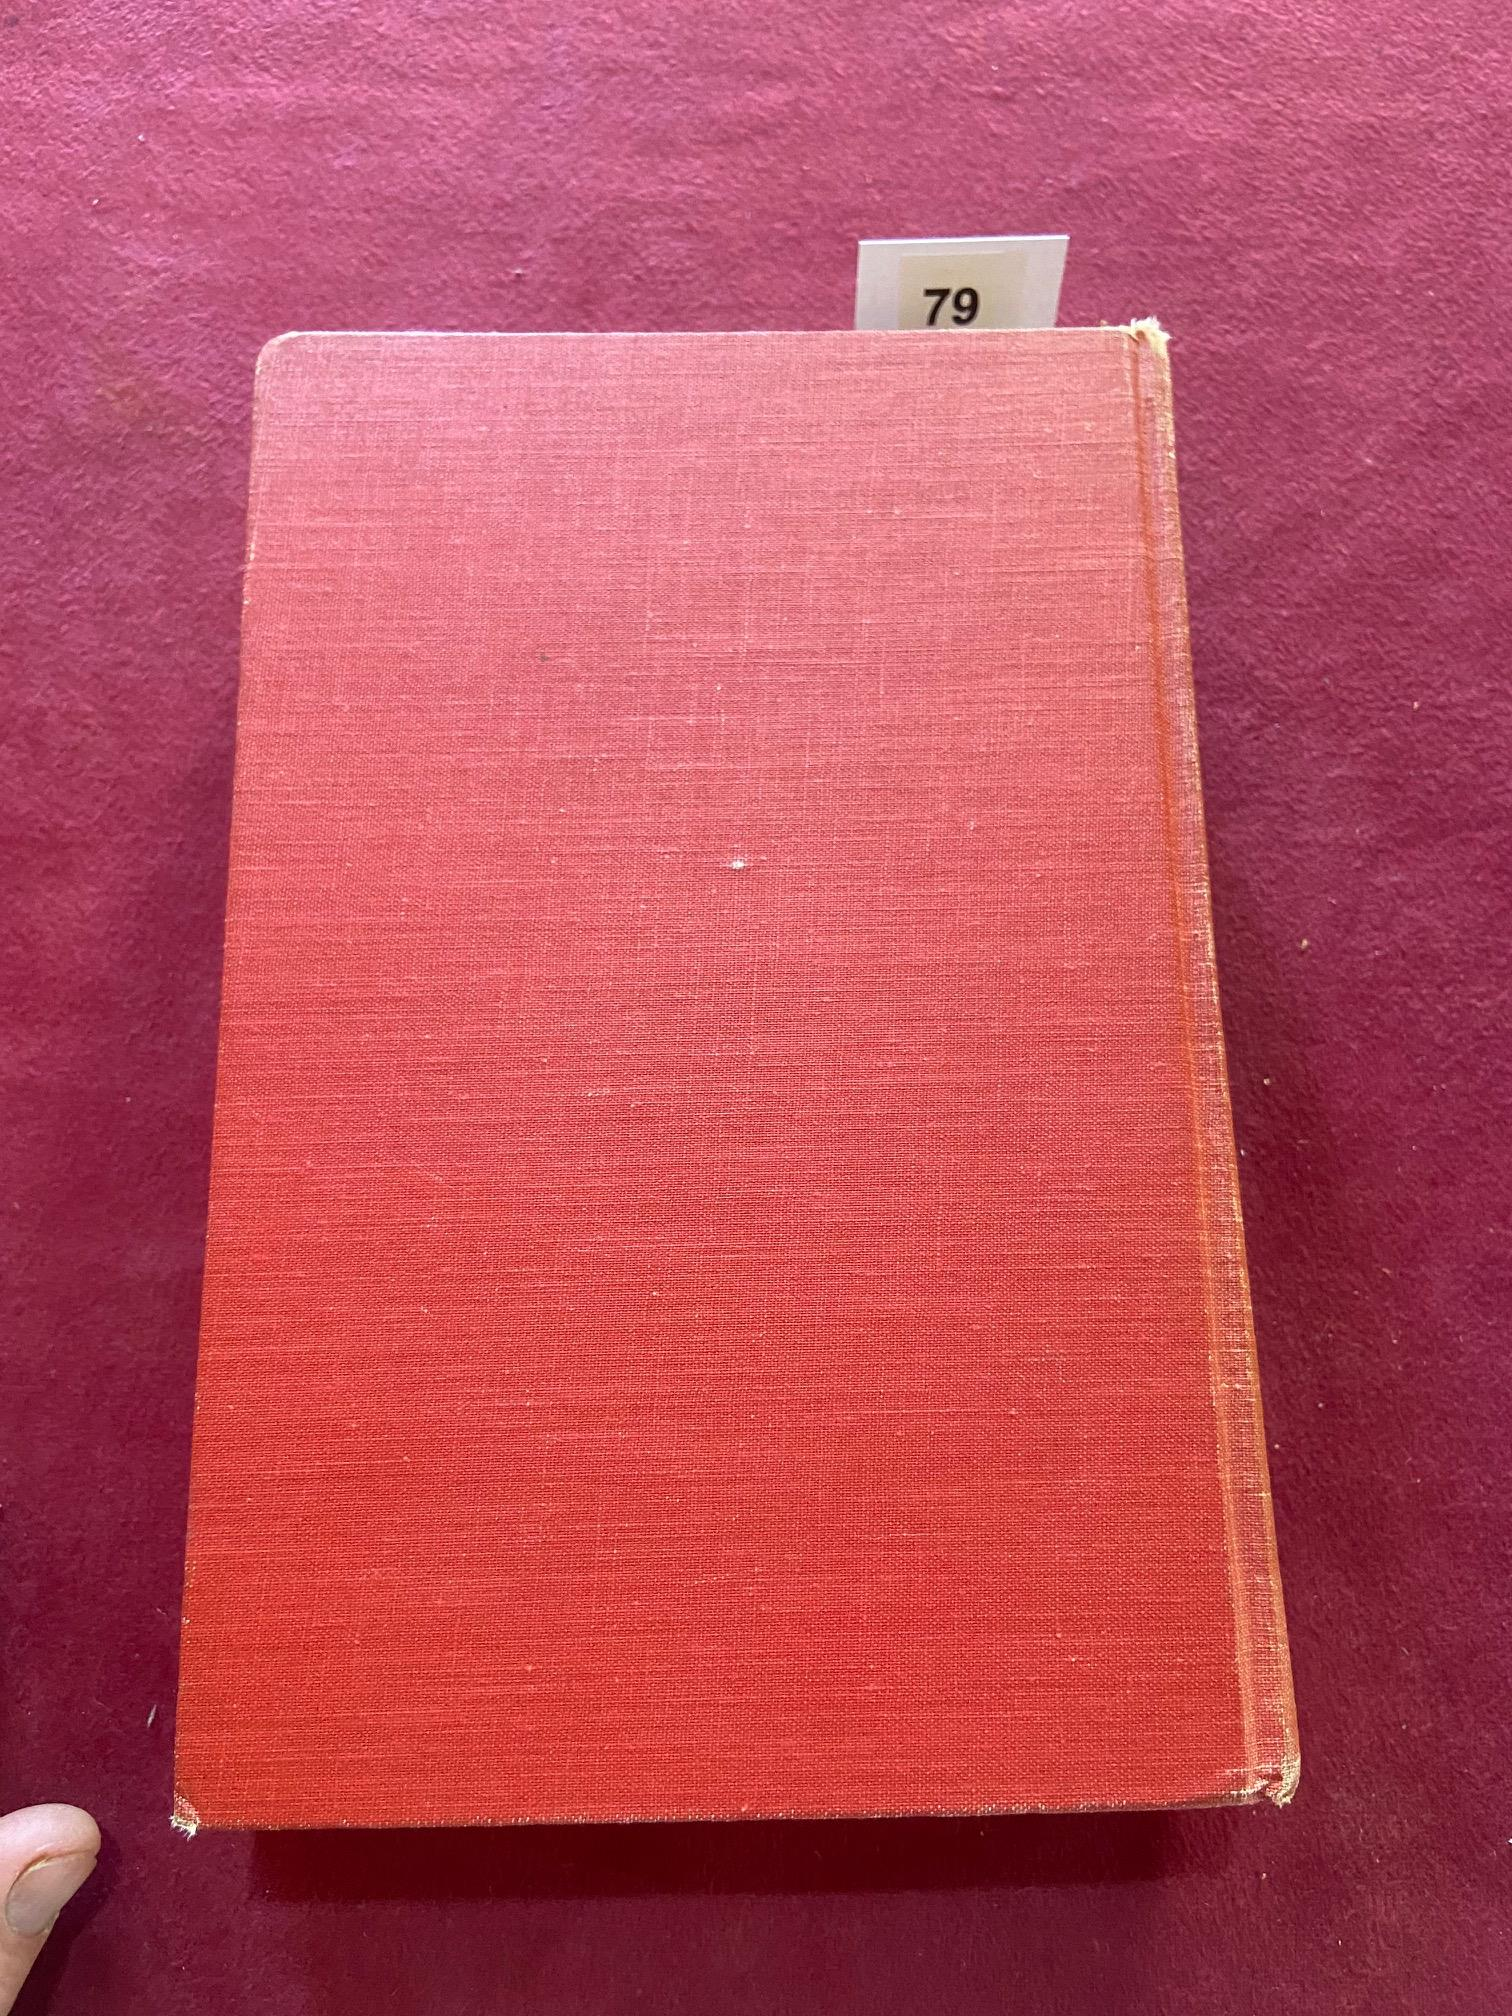 Signed by the Authorÿ Churchill (Winston S.)ÿTheir Finest Hour, Second World War, Vol. II only, - Image 19 of 22